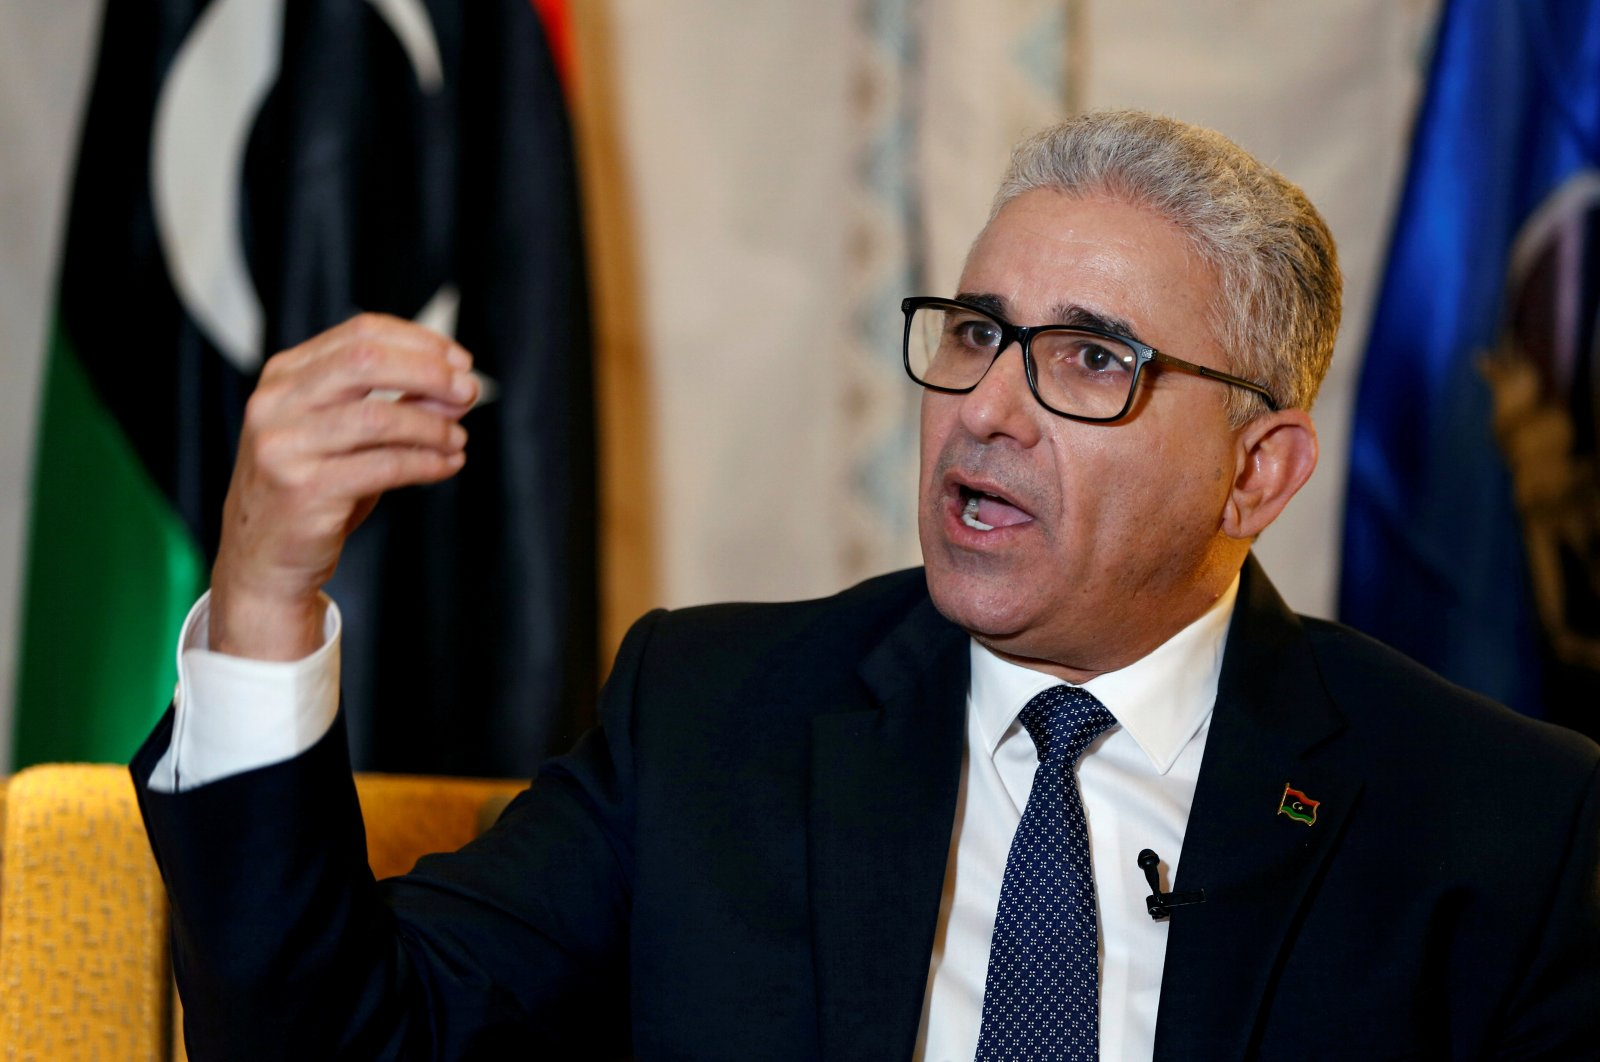 Libya's Interior Minister Fathi Bashagha speaks during an interview with Reuters in Tunis, Tunisia, March 1, 2020. (Reuters Photo)